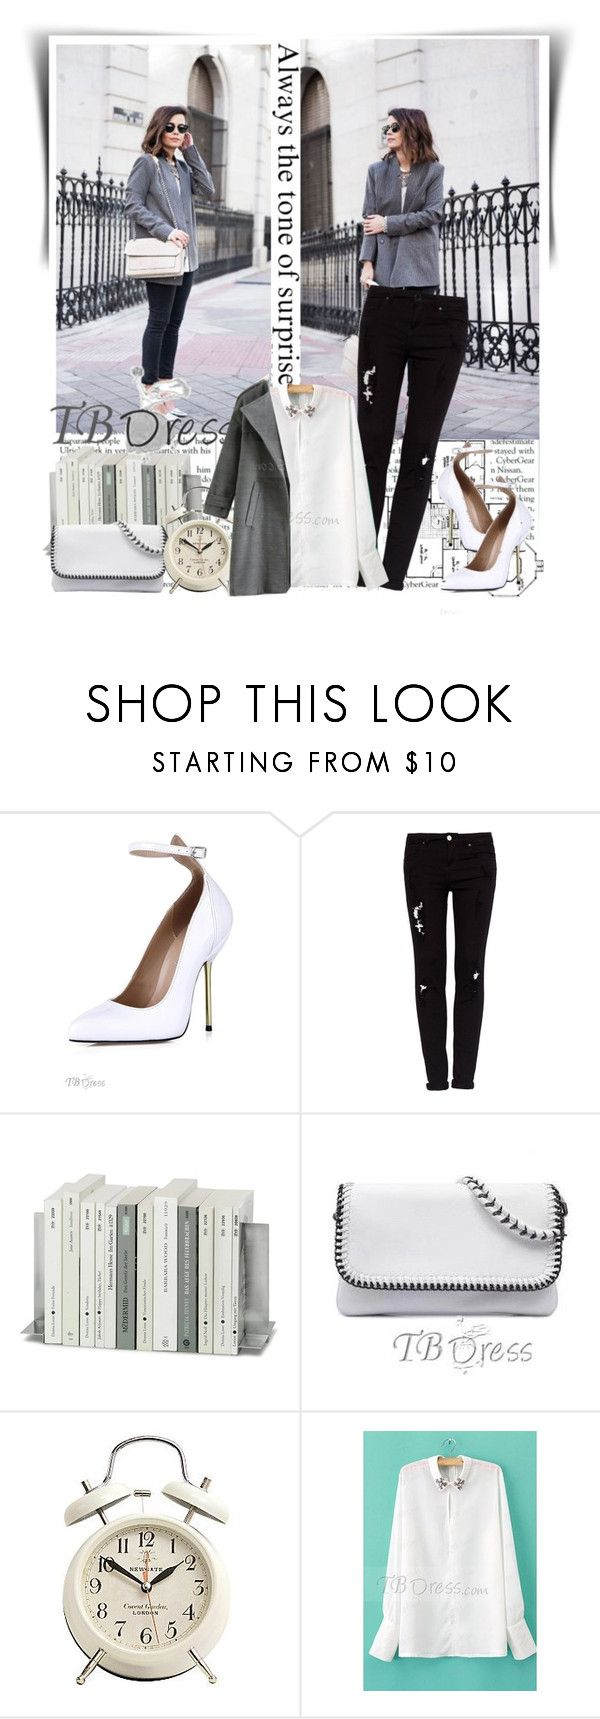 """""""TB Dress"""" by dalila-mujic ❤ liked on Polyvore featuring INDIE HAIR, Melissa, Pull&Bear and tbdress"""